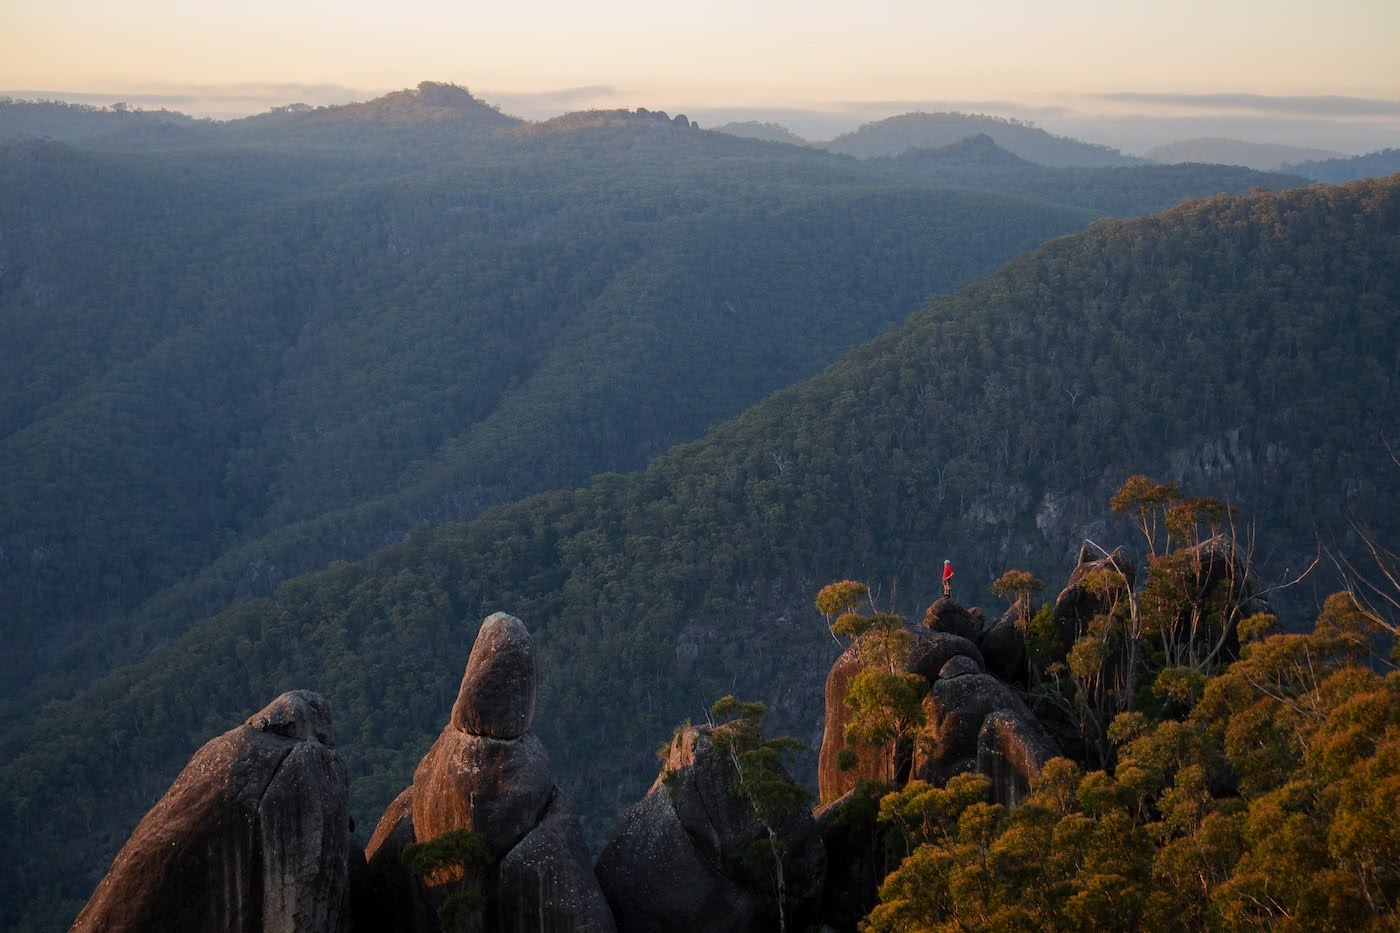 The Best of the New England Highlands (NSW) Dan Parkes #1 COVER IMAGE - The Needles at Gibraltar Range NP